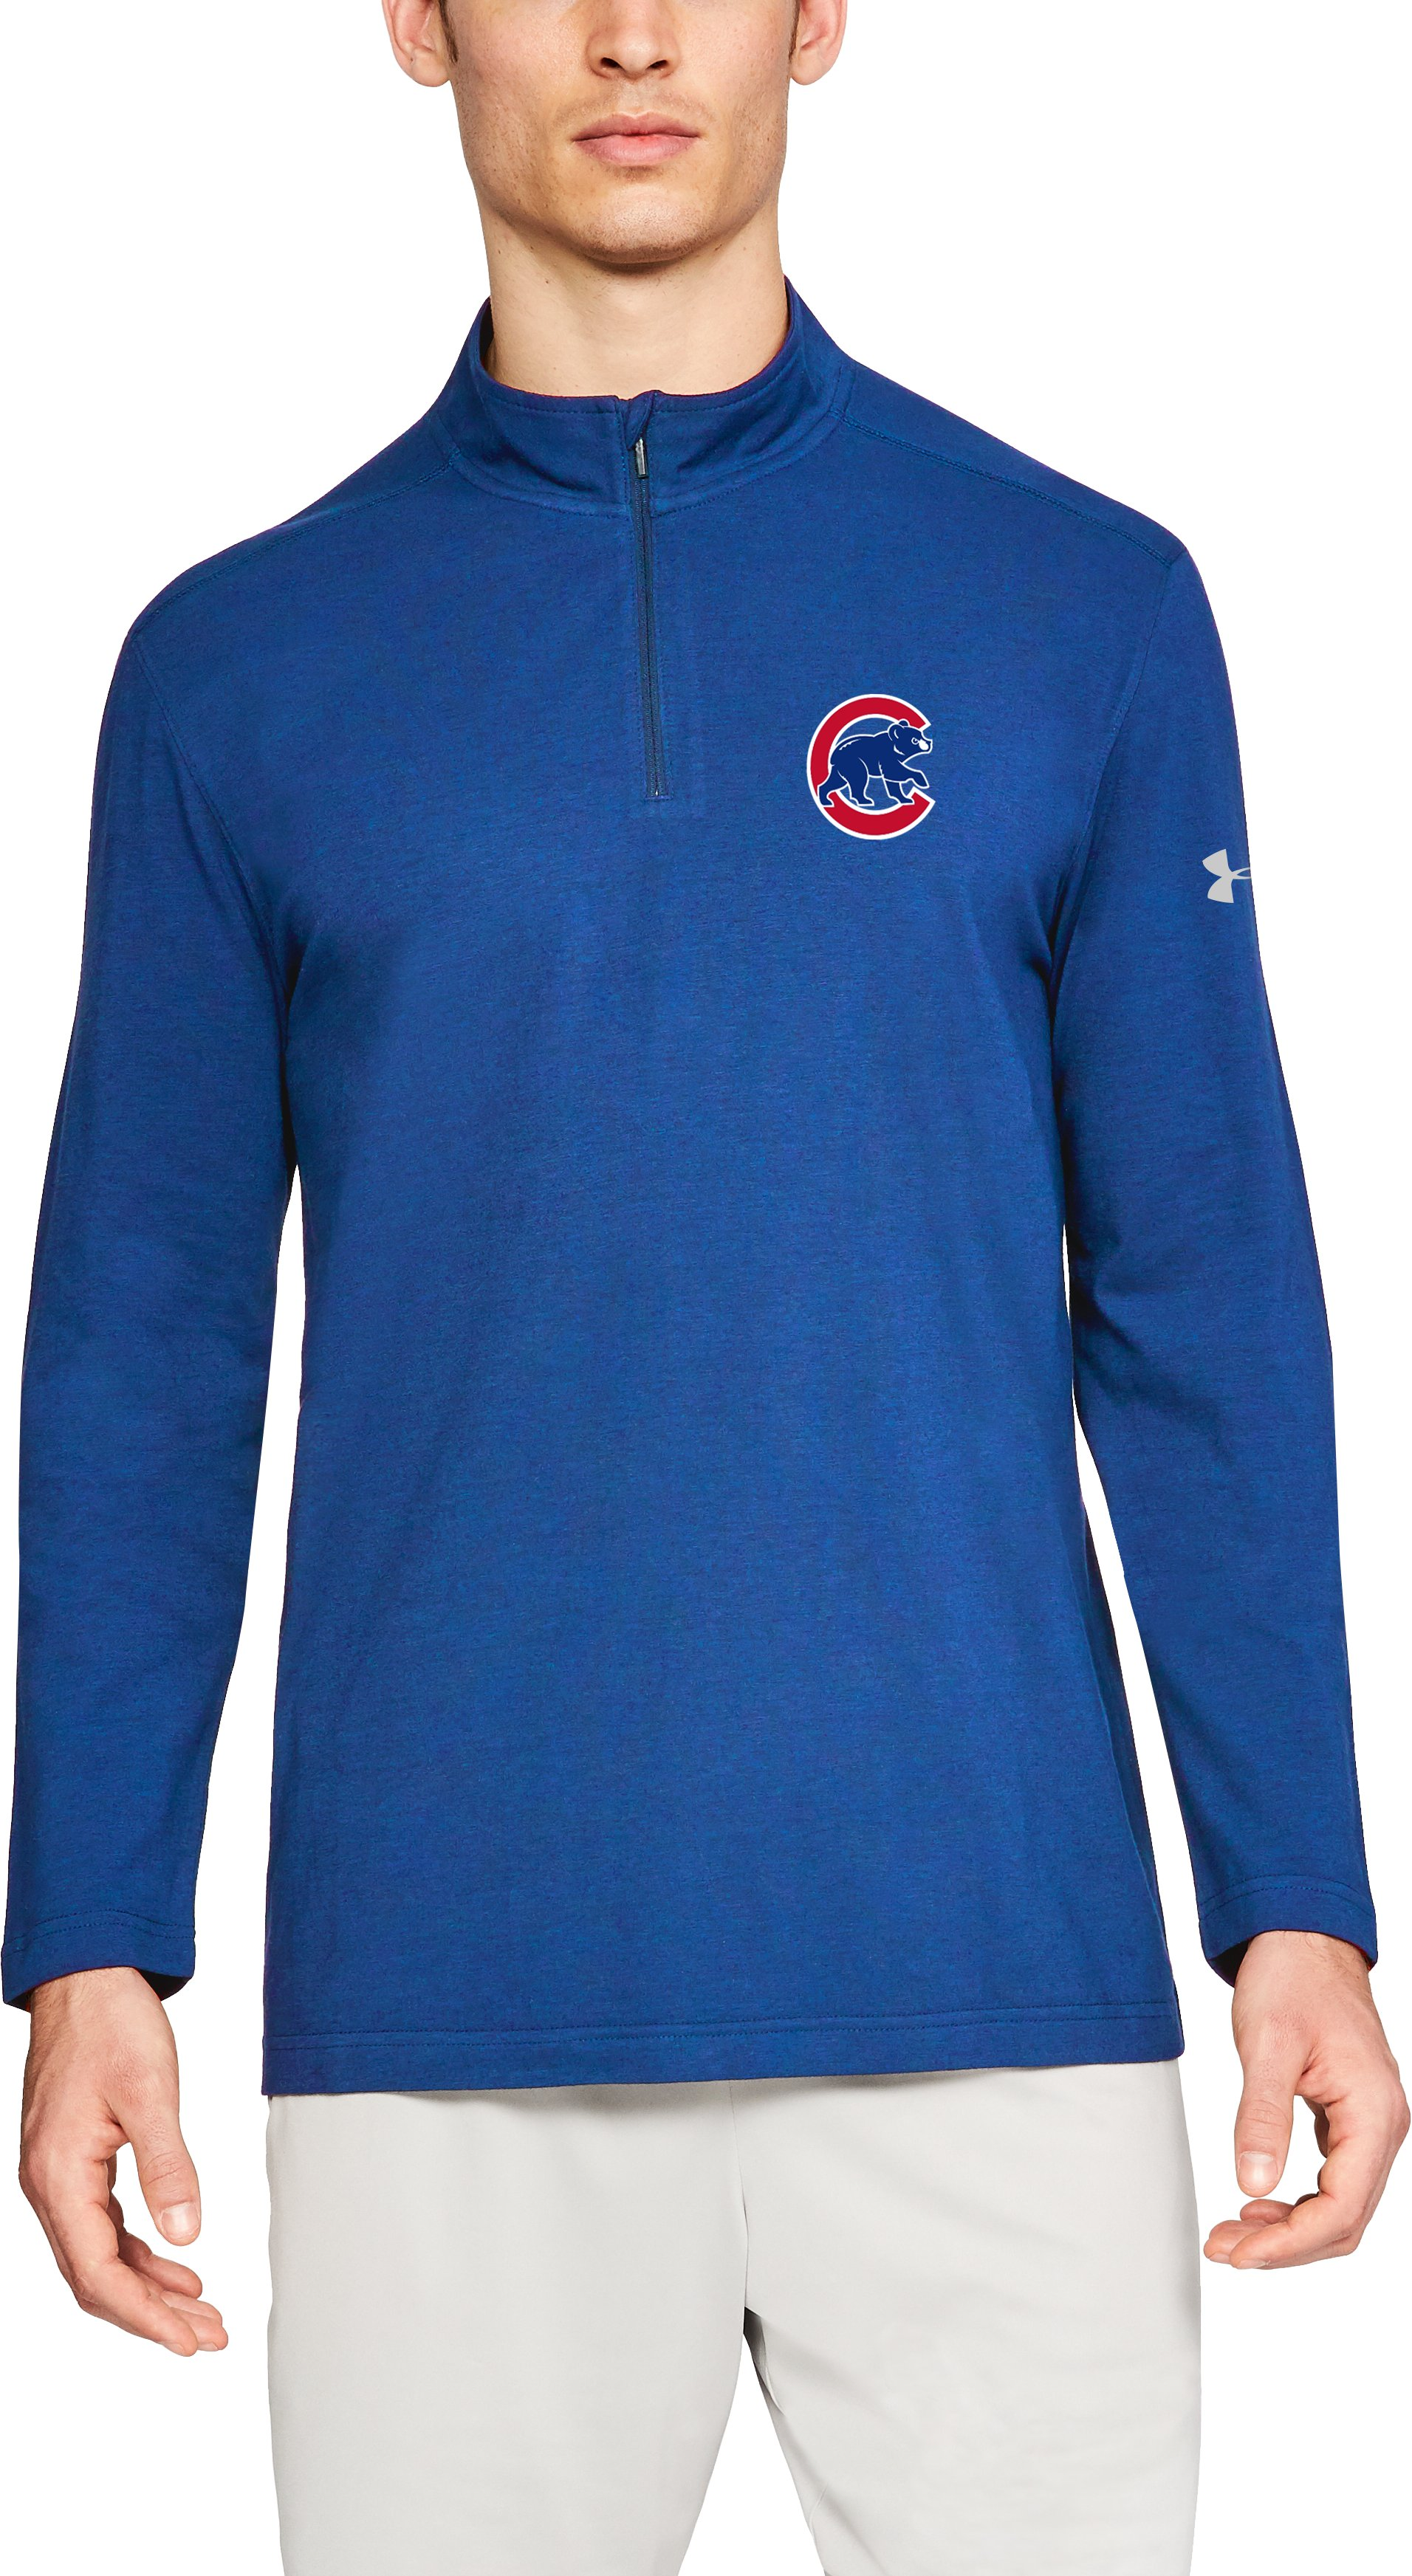 Men's MLB UA Chest ¼ Zip, MLB_CHC_Bright Royal,